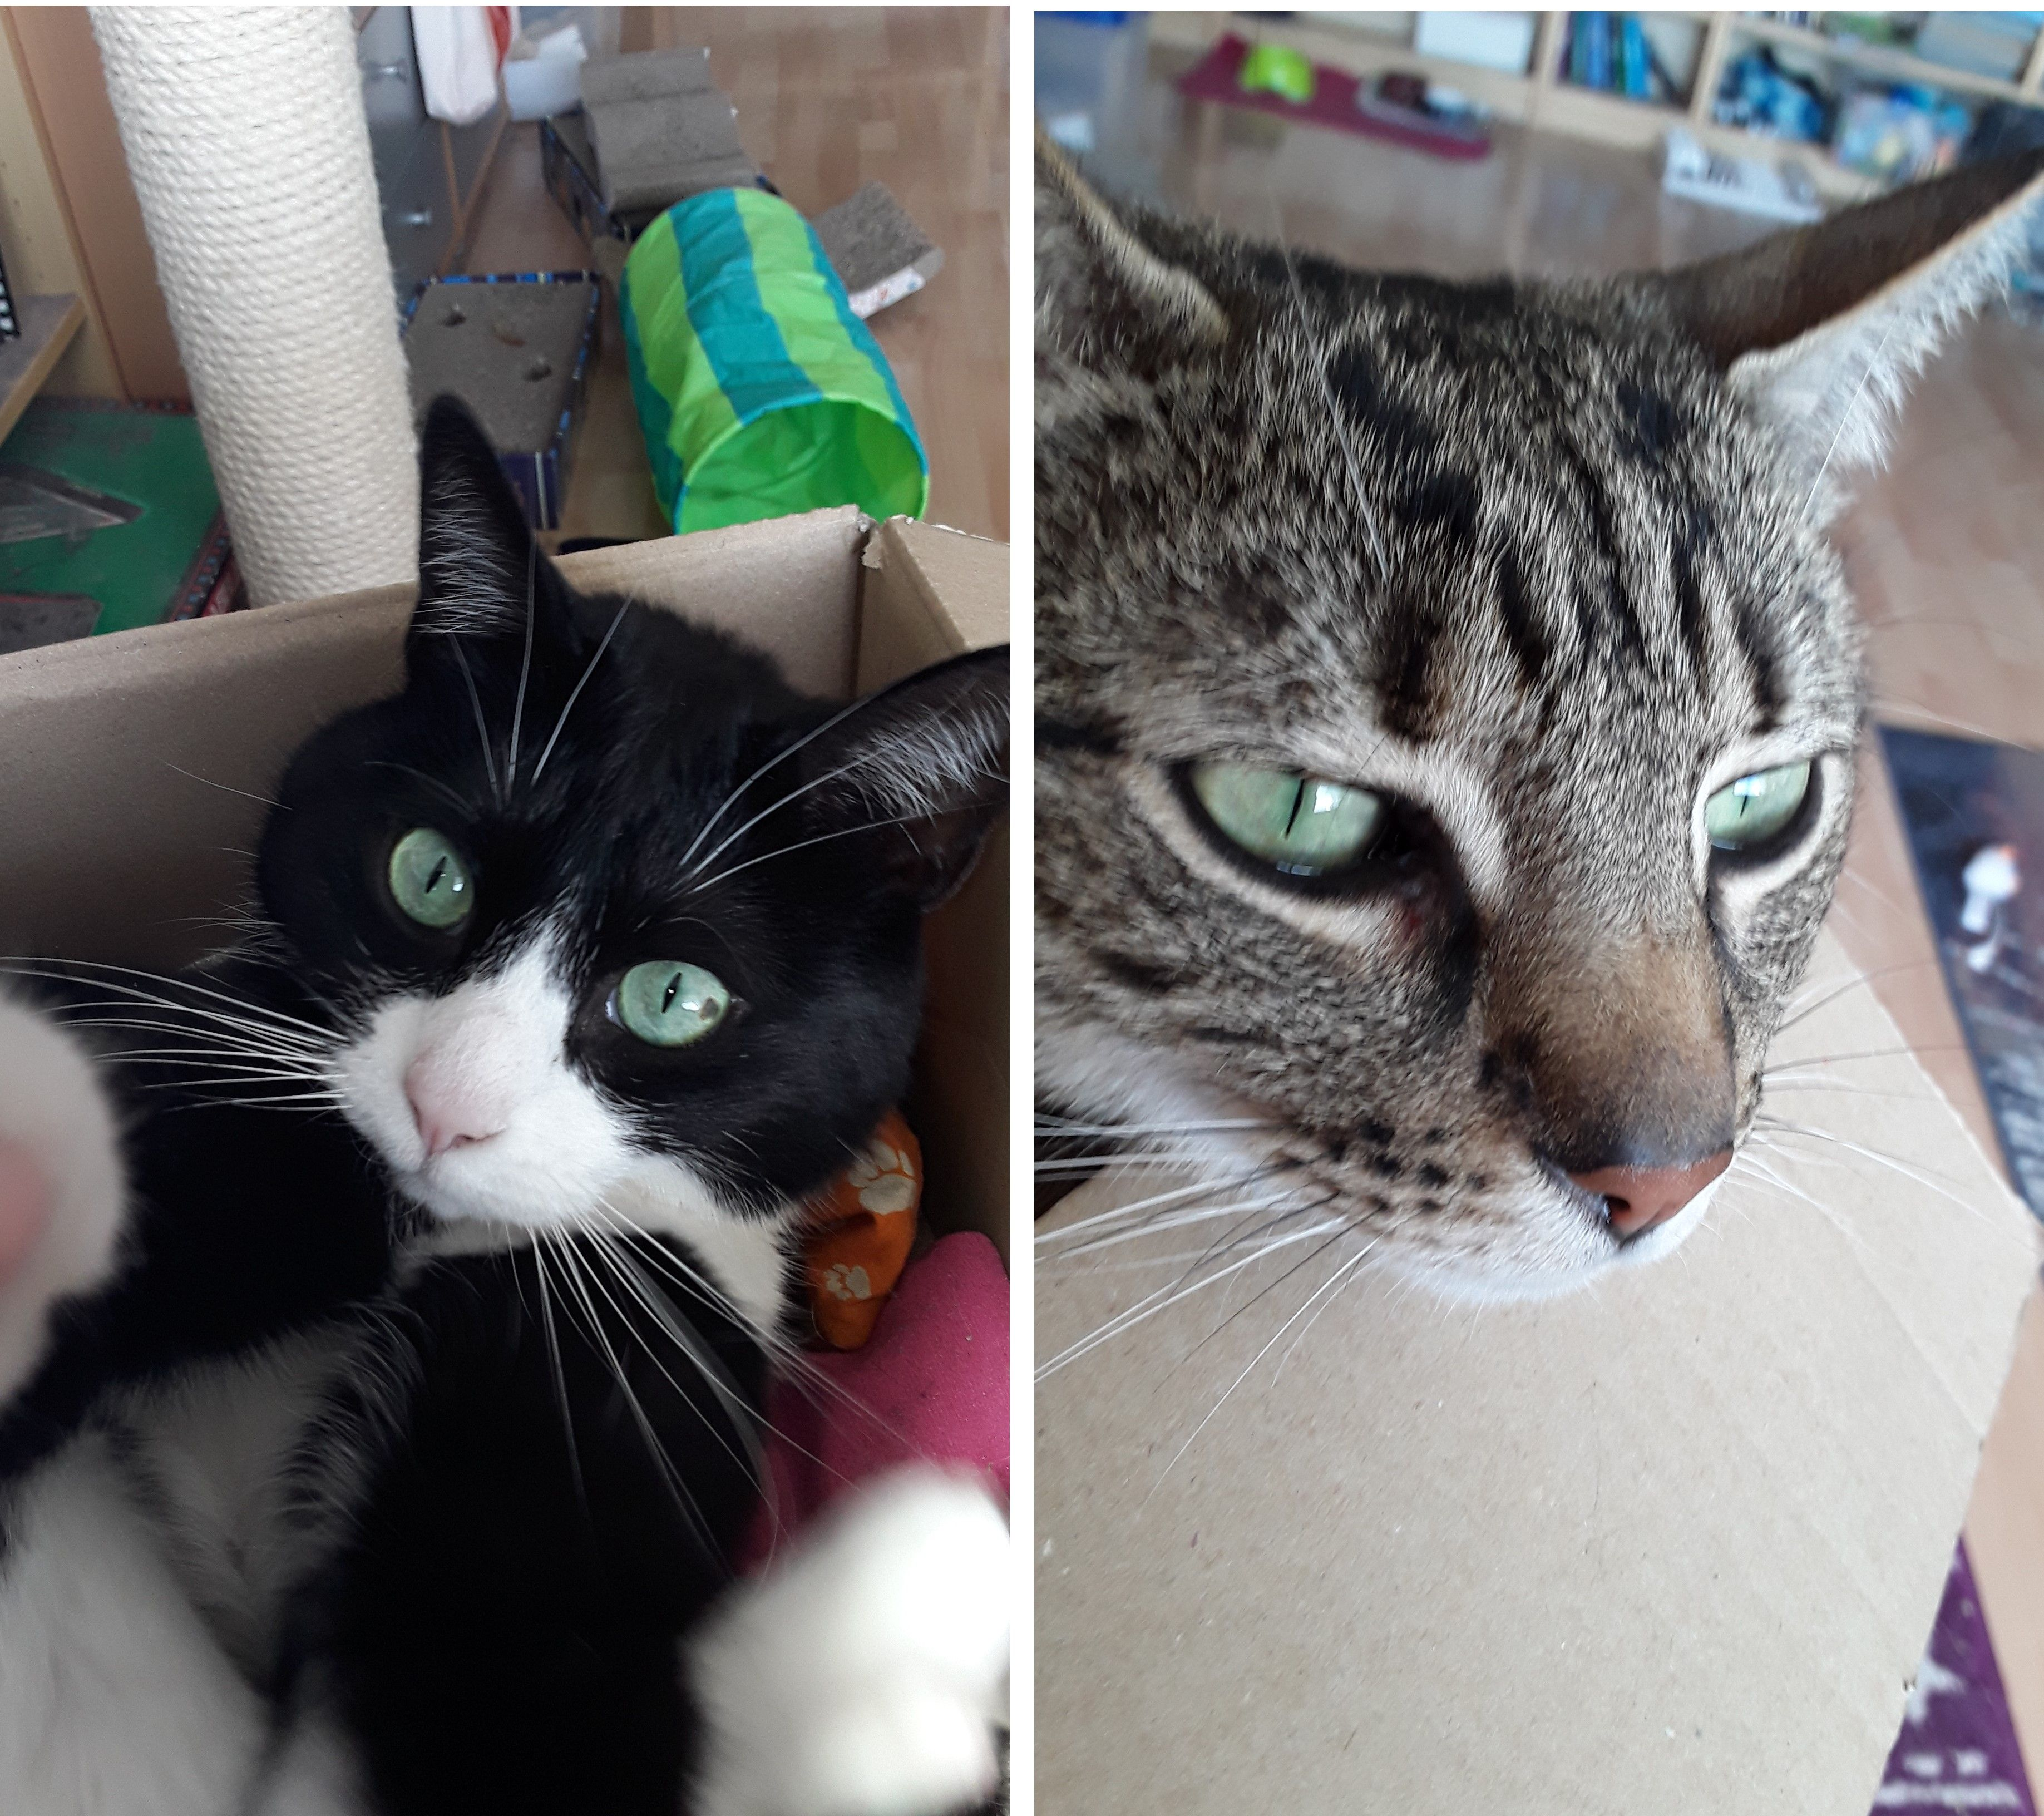 Finally Managed Some Great Closeups Of Our Cat Siblings All It Took Was An Old Amazon Box And A Bit Of Catnip Reddit Meet Sia Left A Cats Catnip Amazon Box